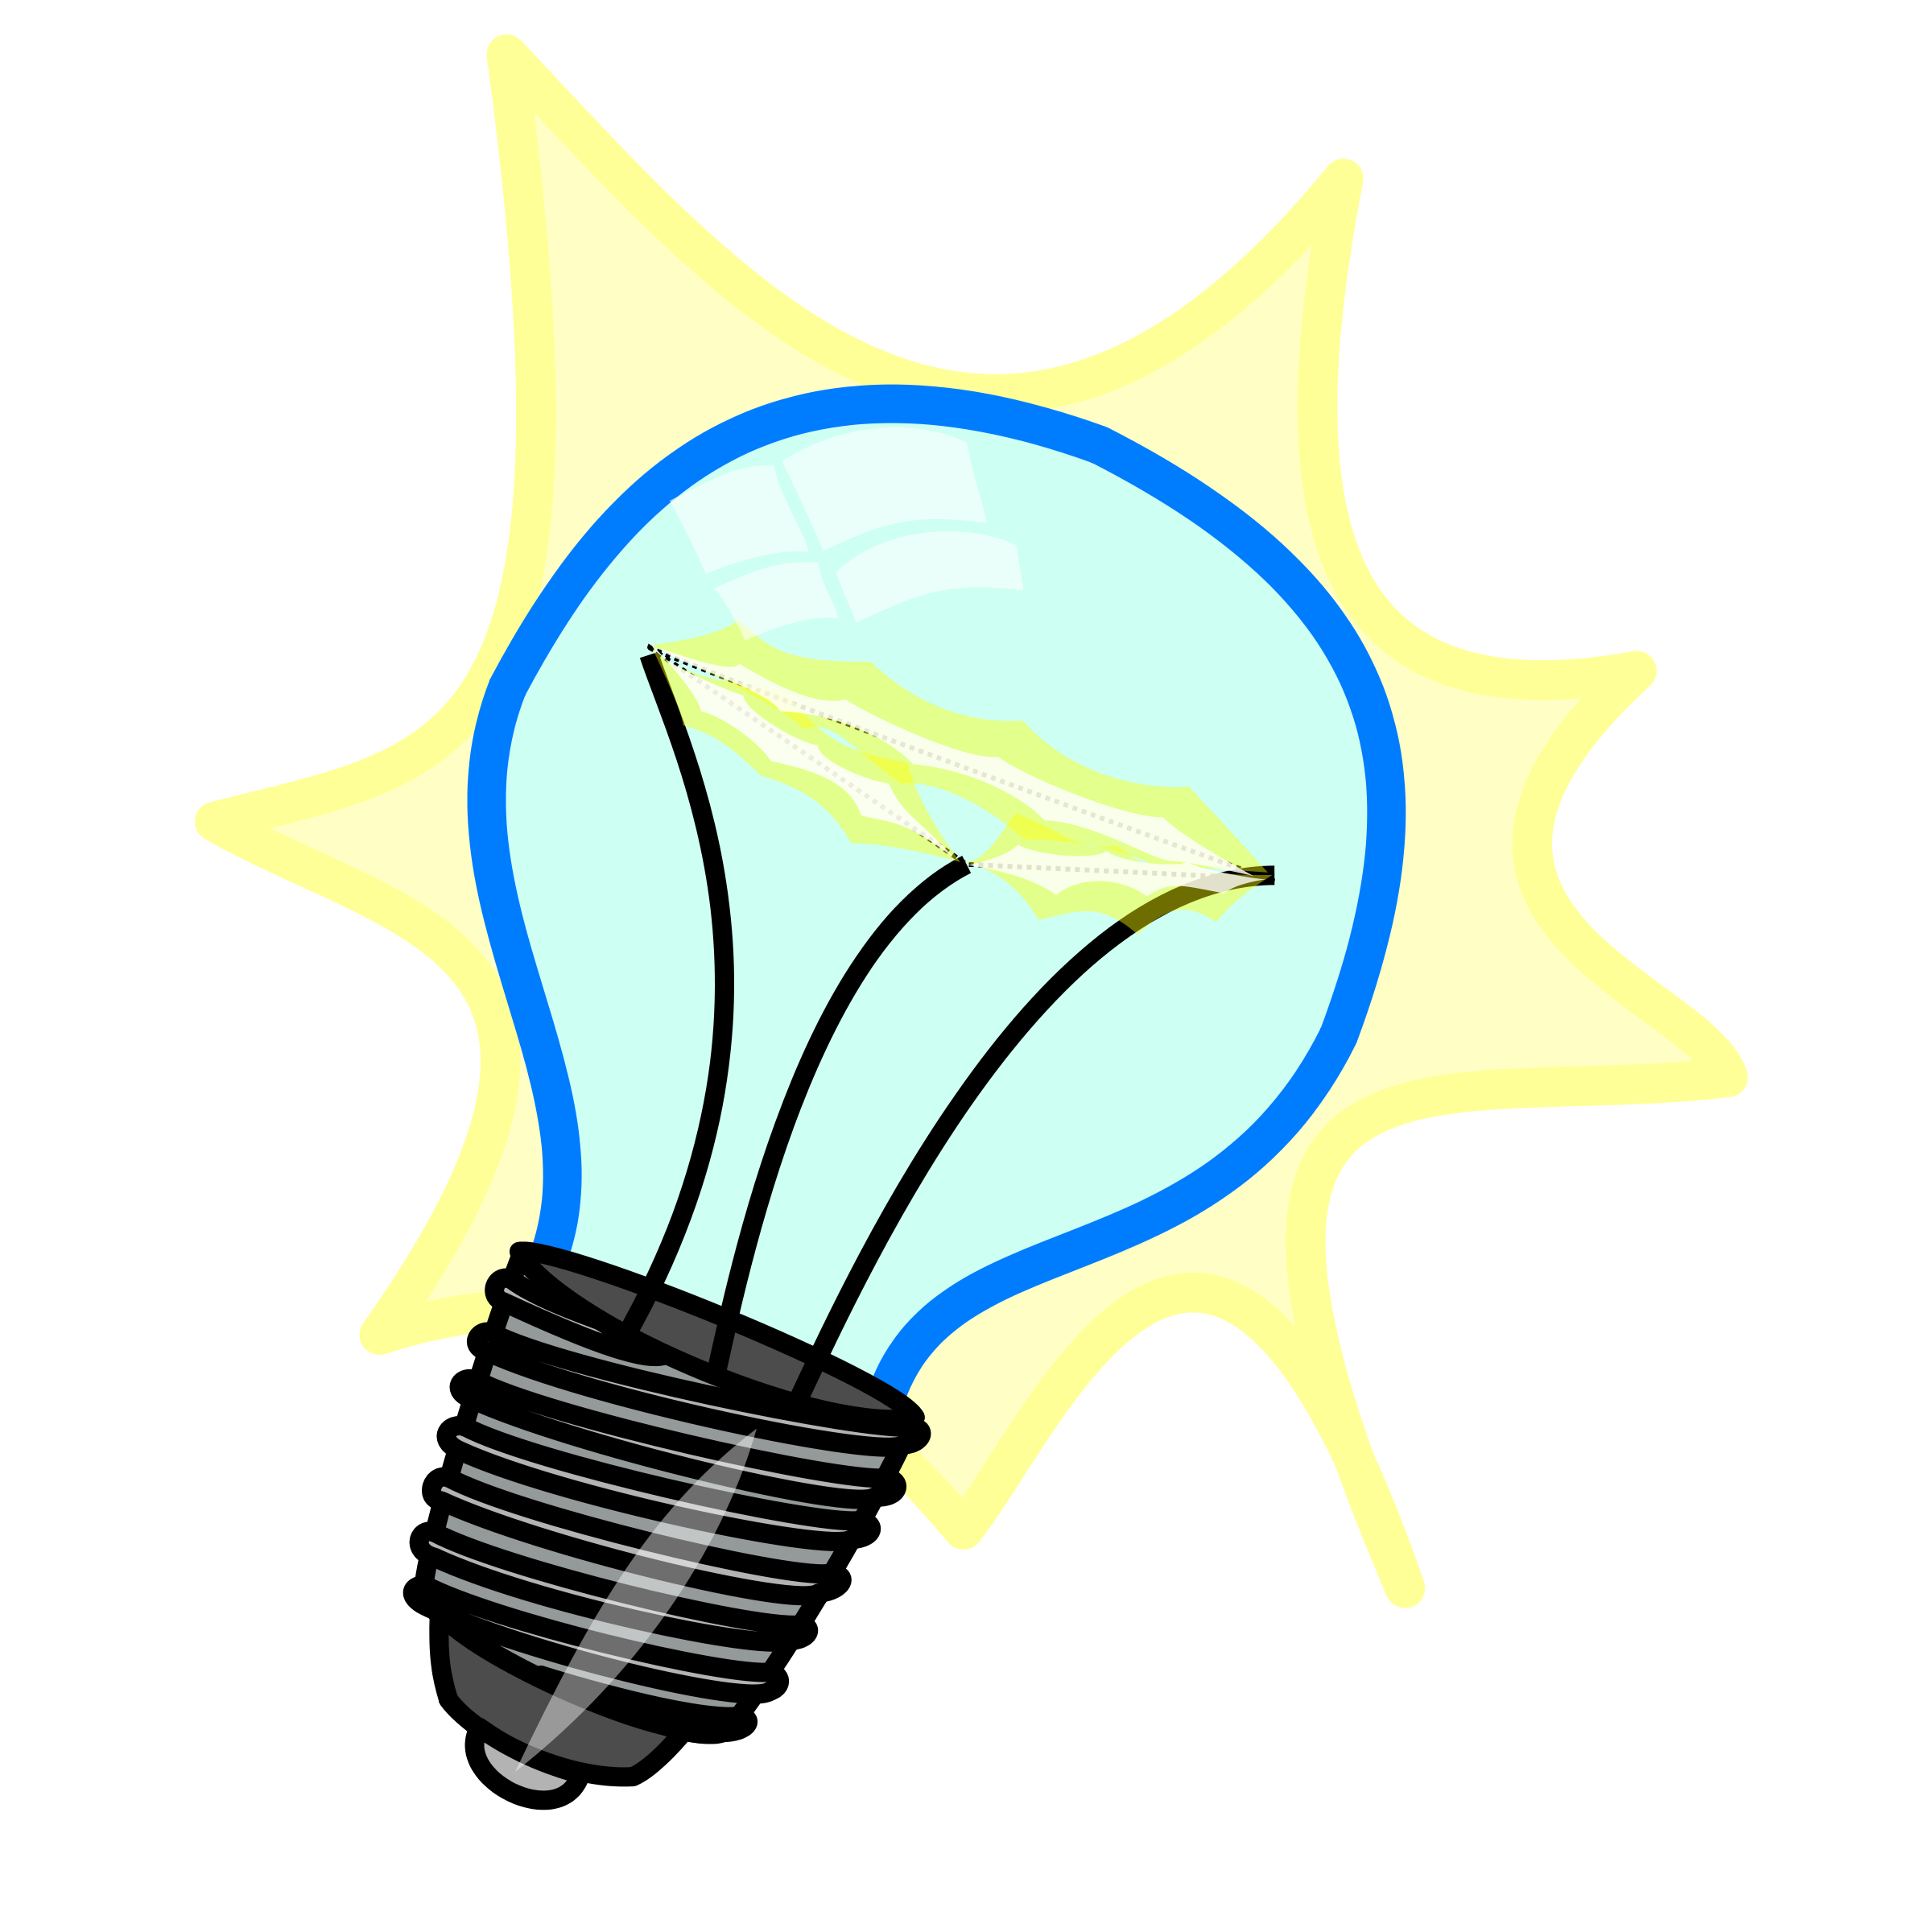 Heat clipart light source. Cfl lightbulb panda free